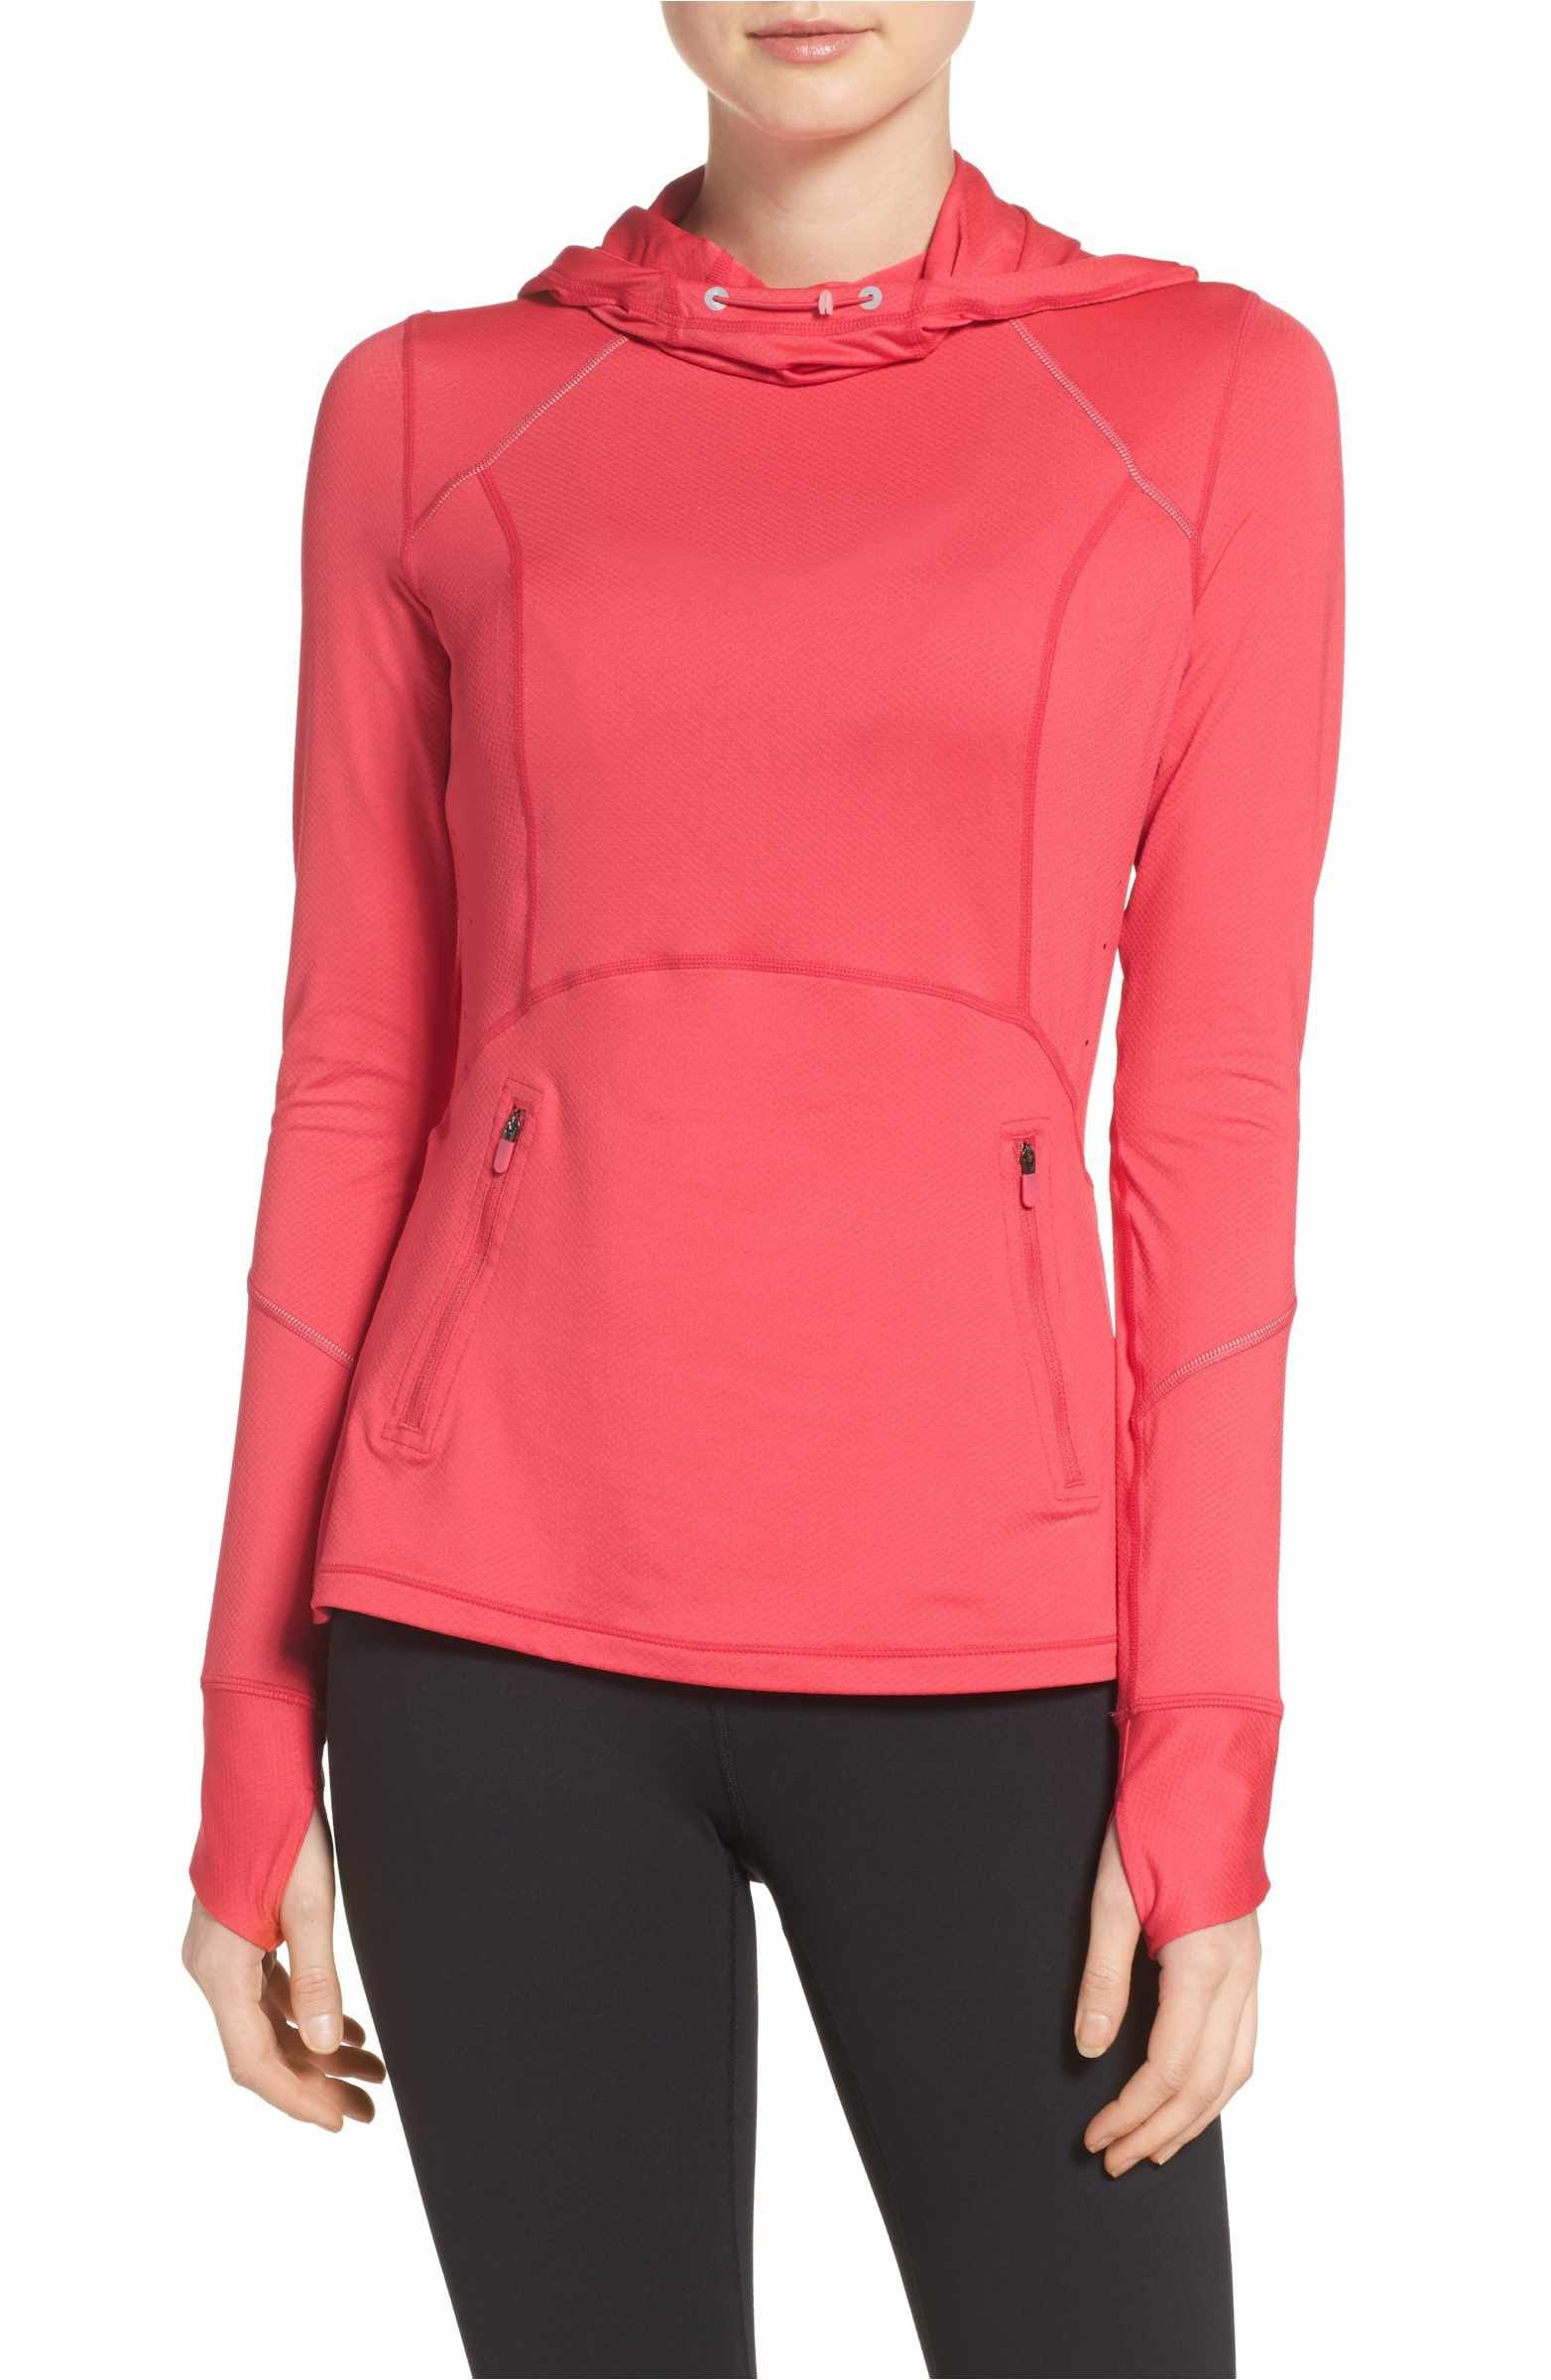 Zella Run Free Hooded Pullover Pullover, Active wear for